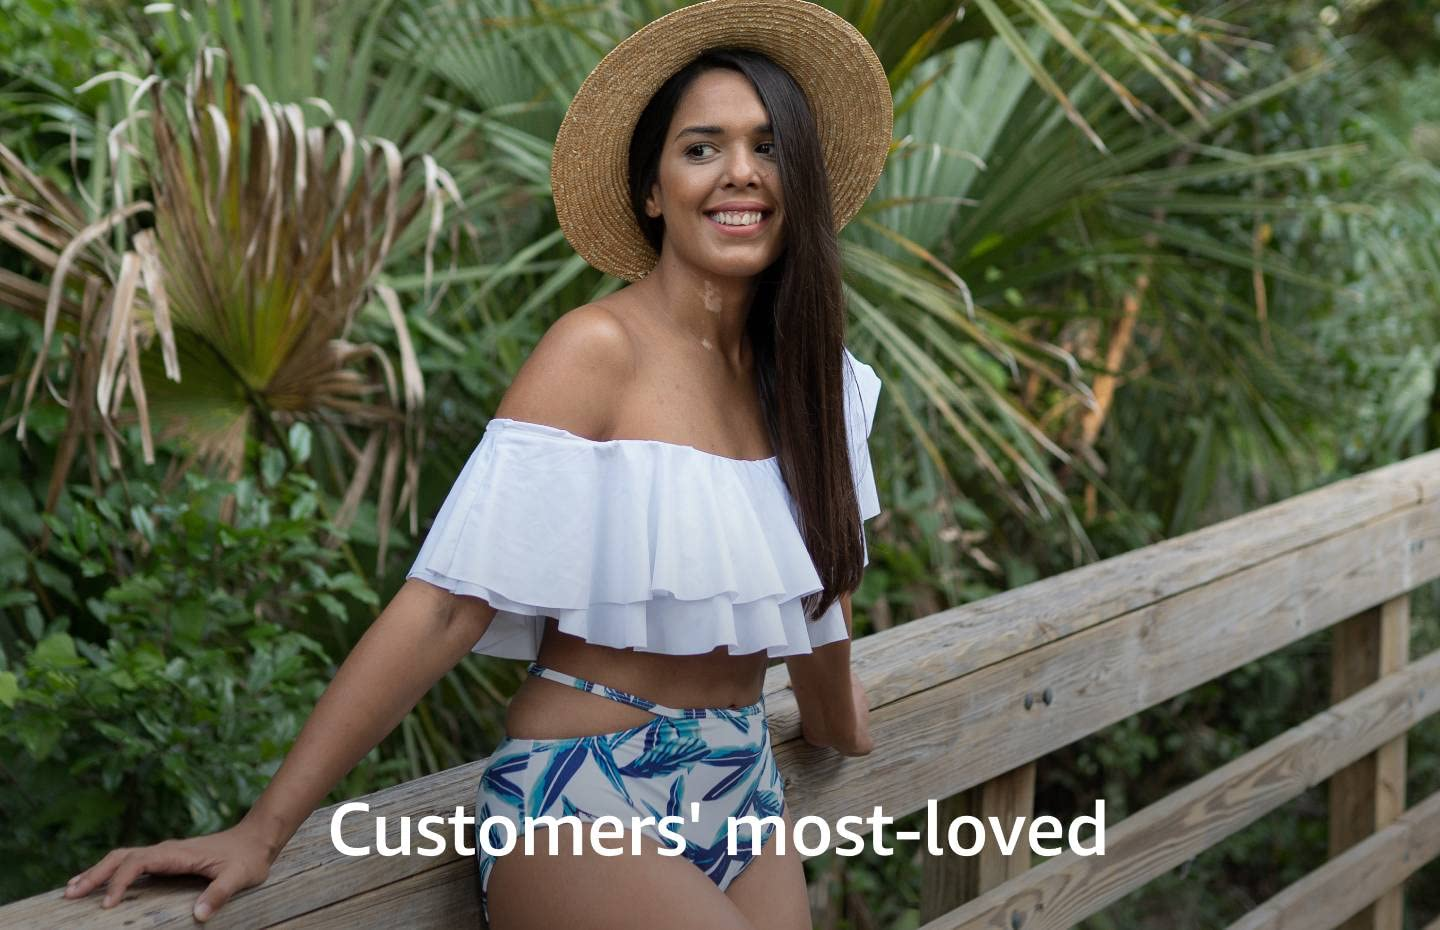 Women's customers' most loved fashion